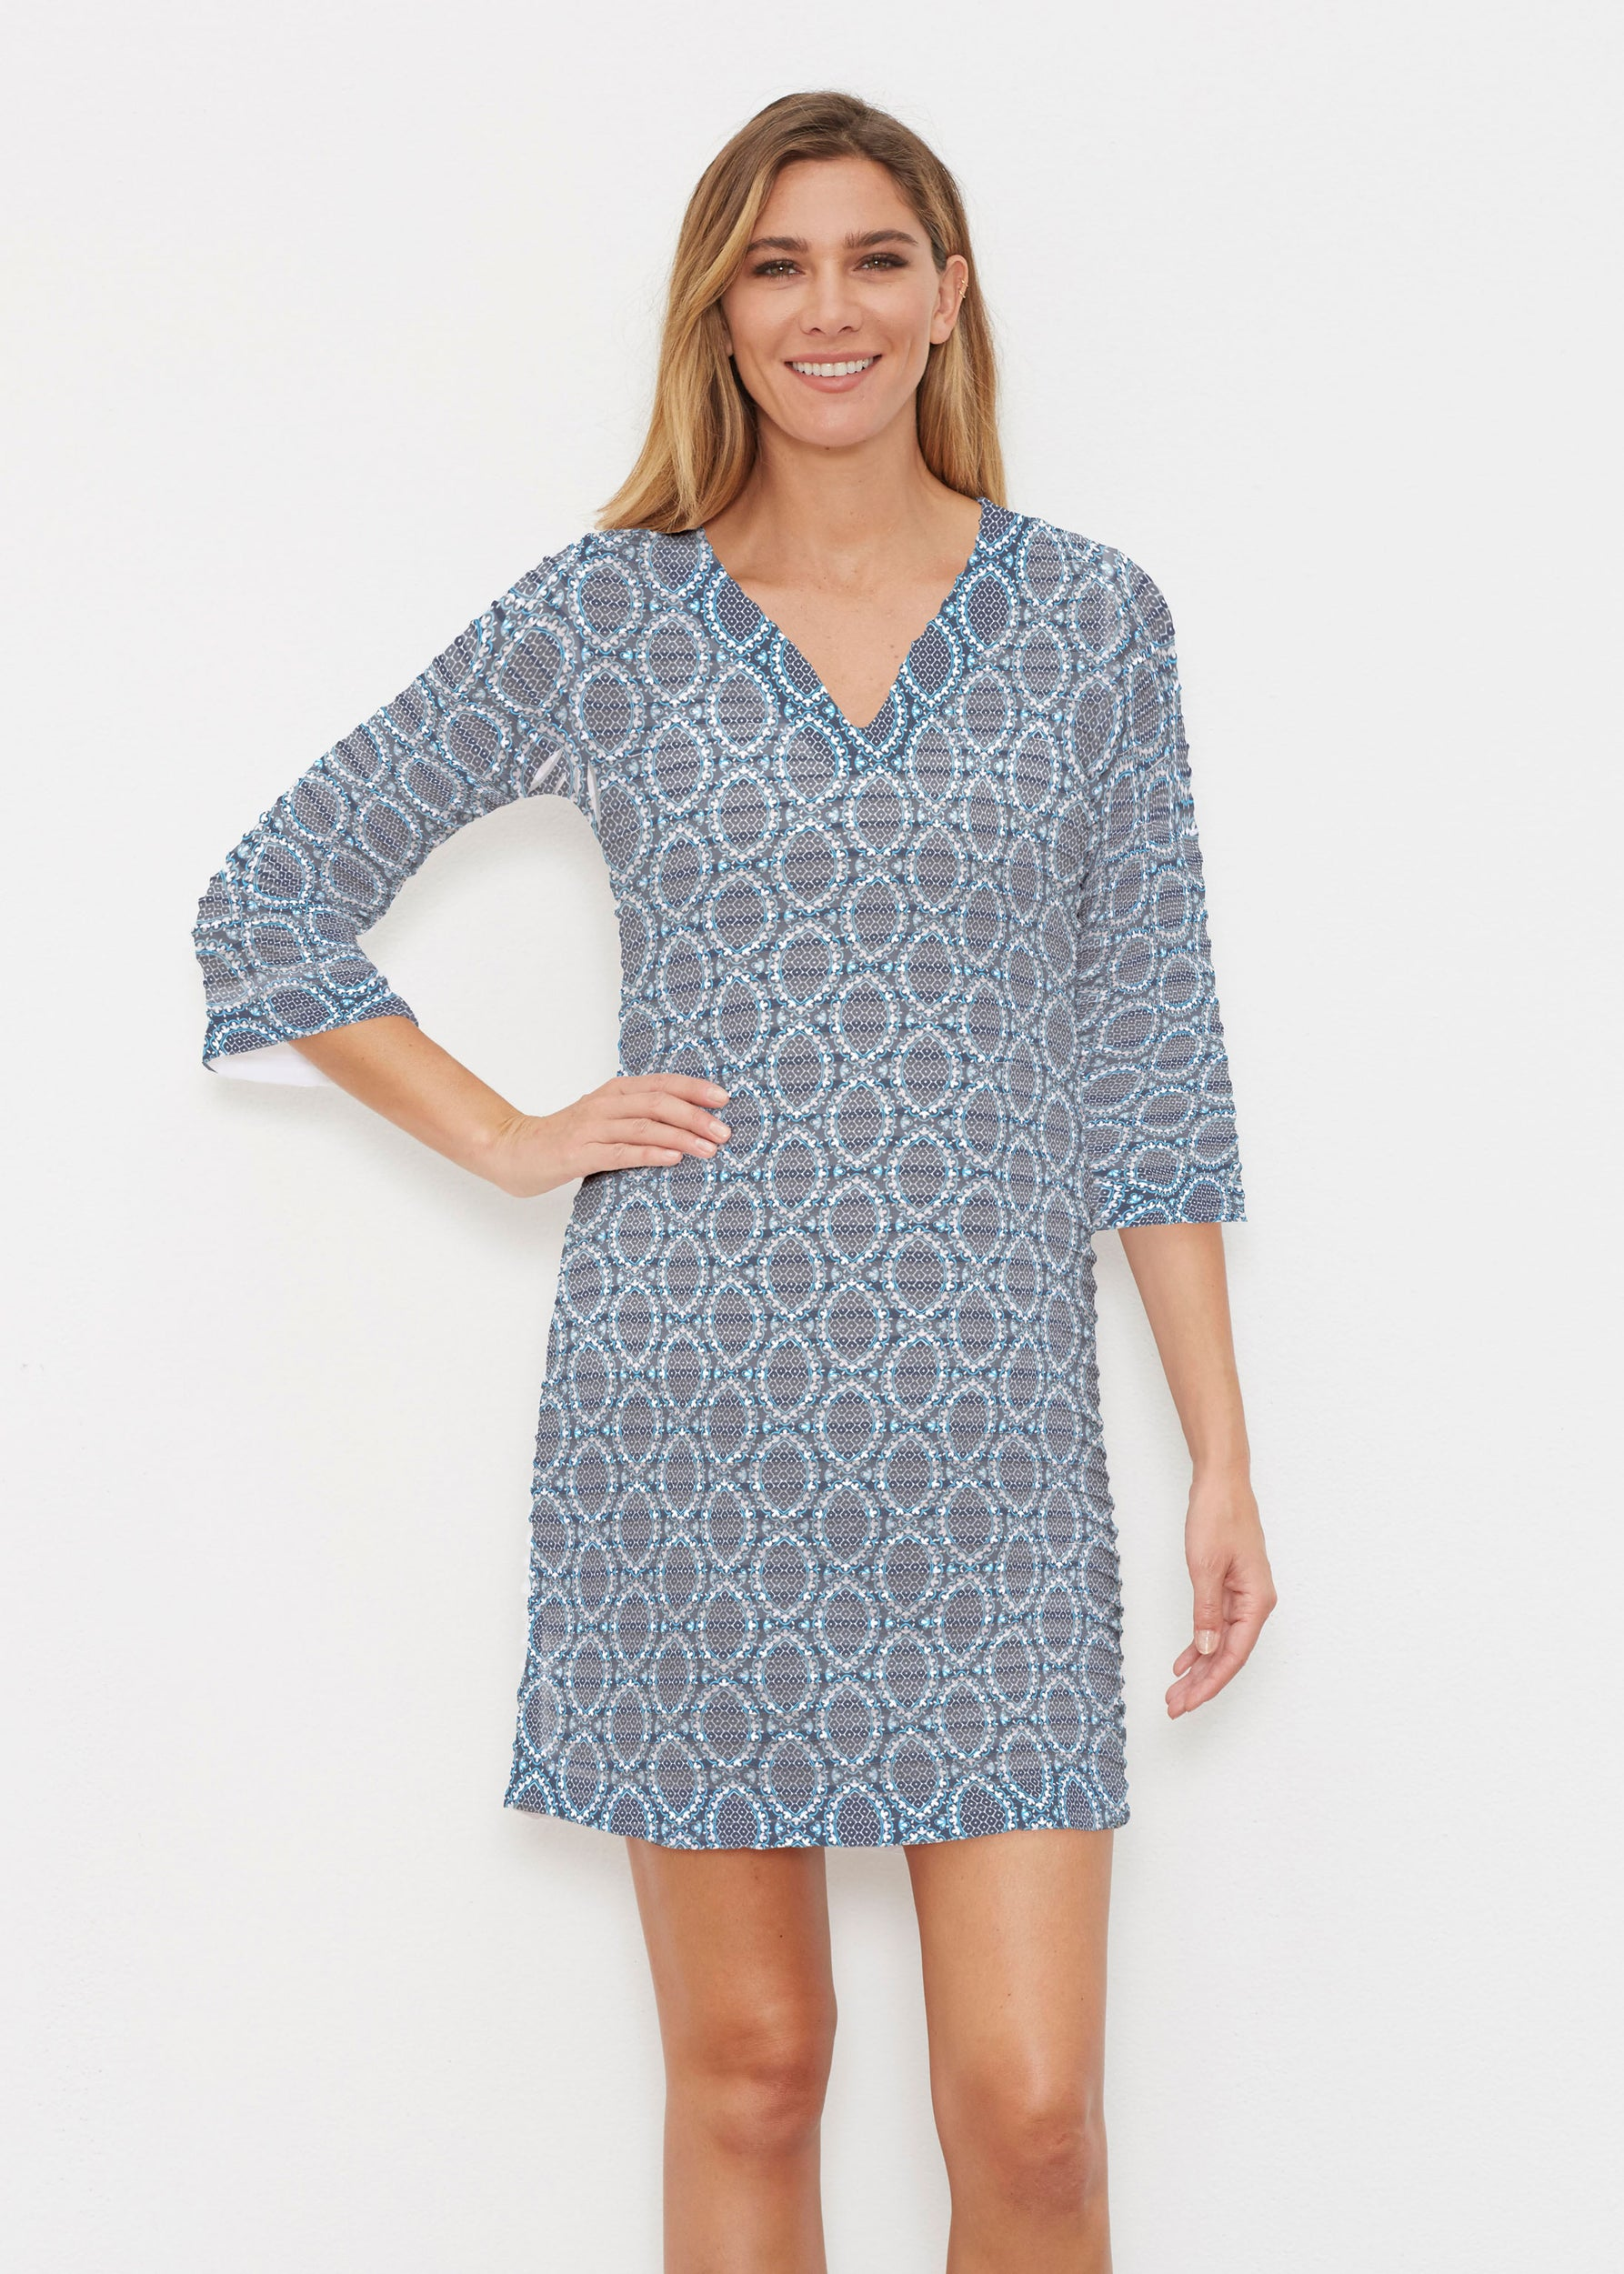 8f20862776 Namaste Lace (13370) ~ Banded 3/4 Sleeve Cover-up Dress – Whimsy Rose